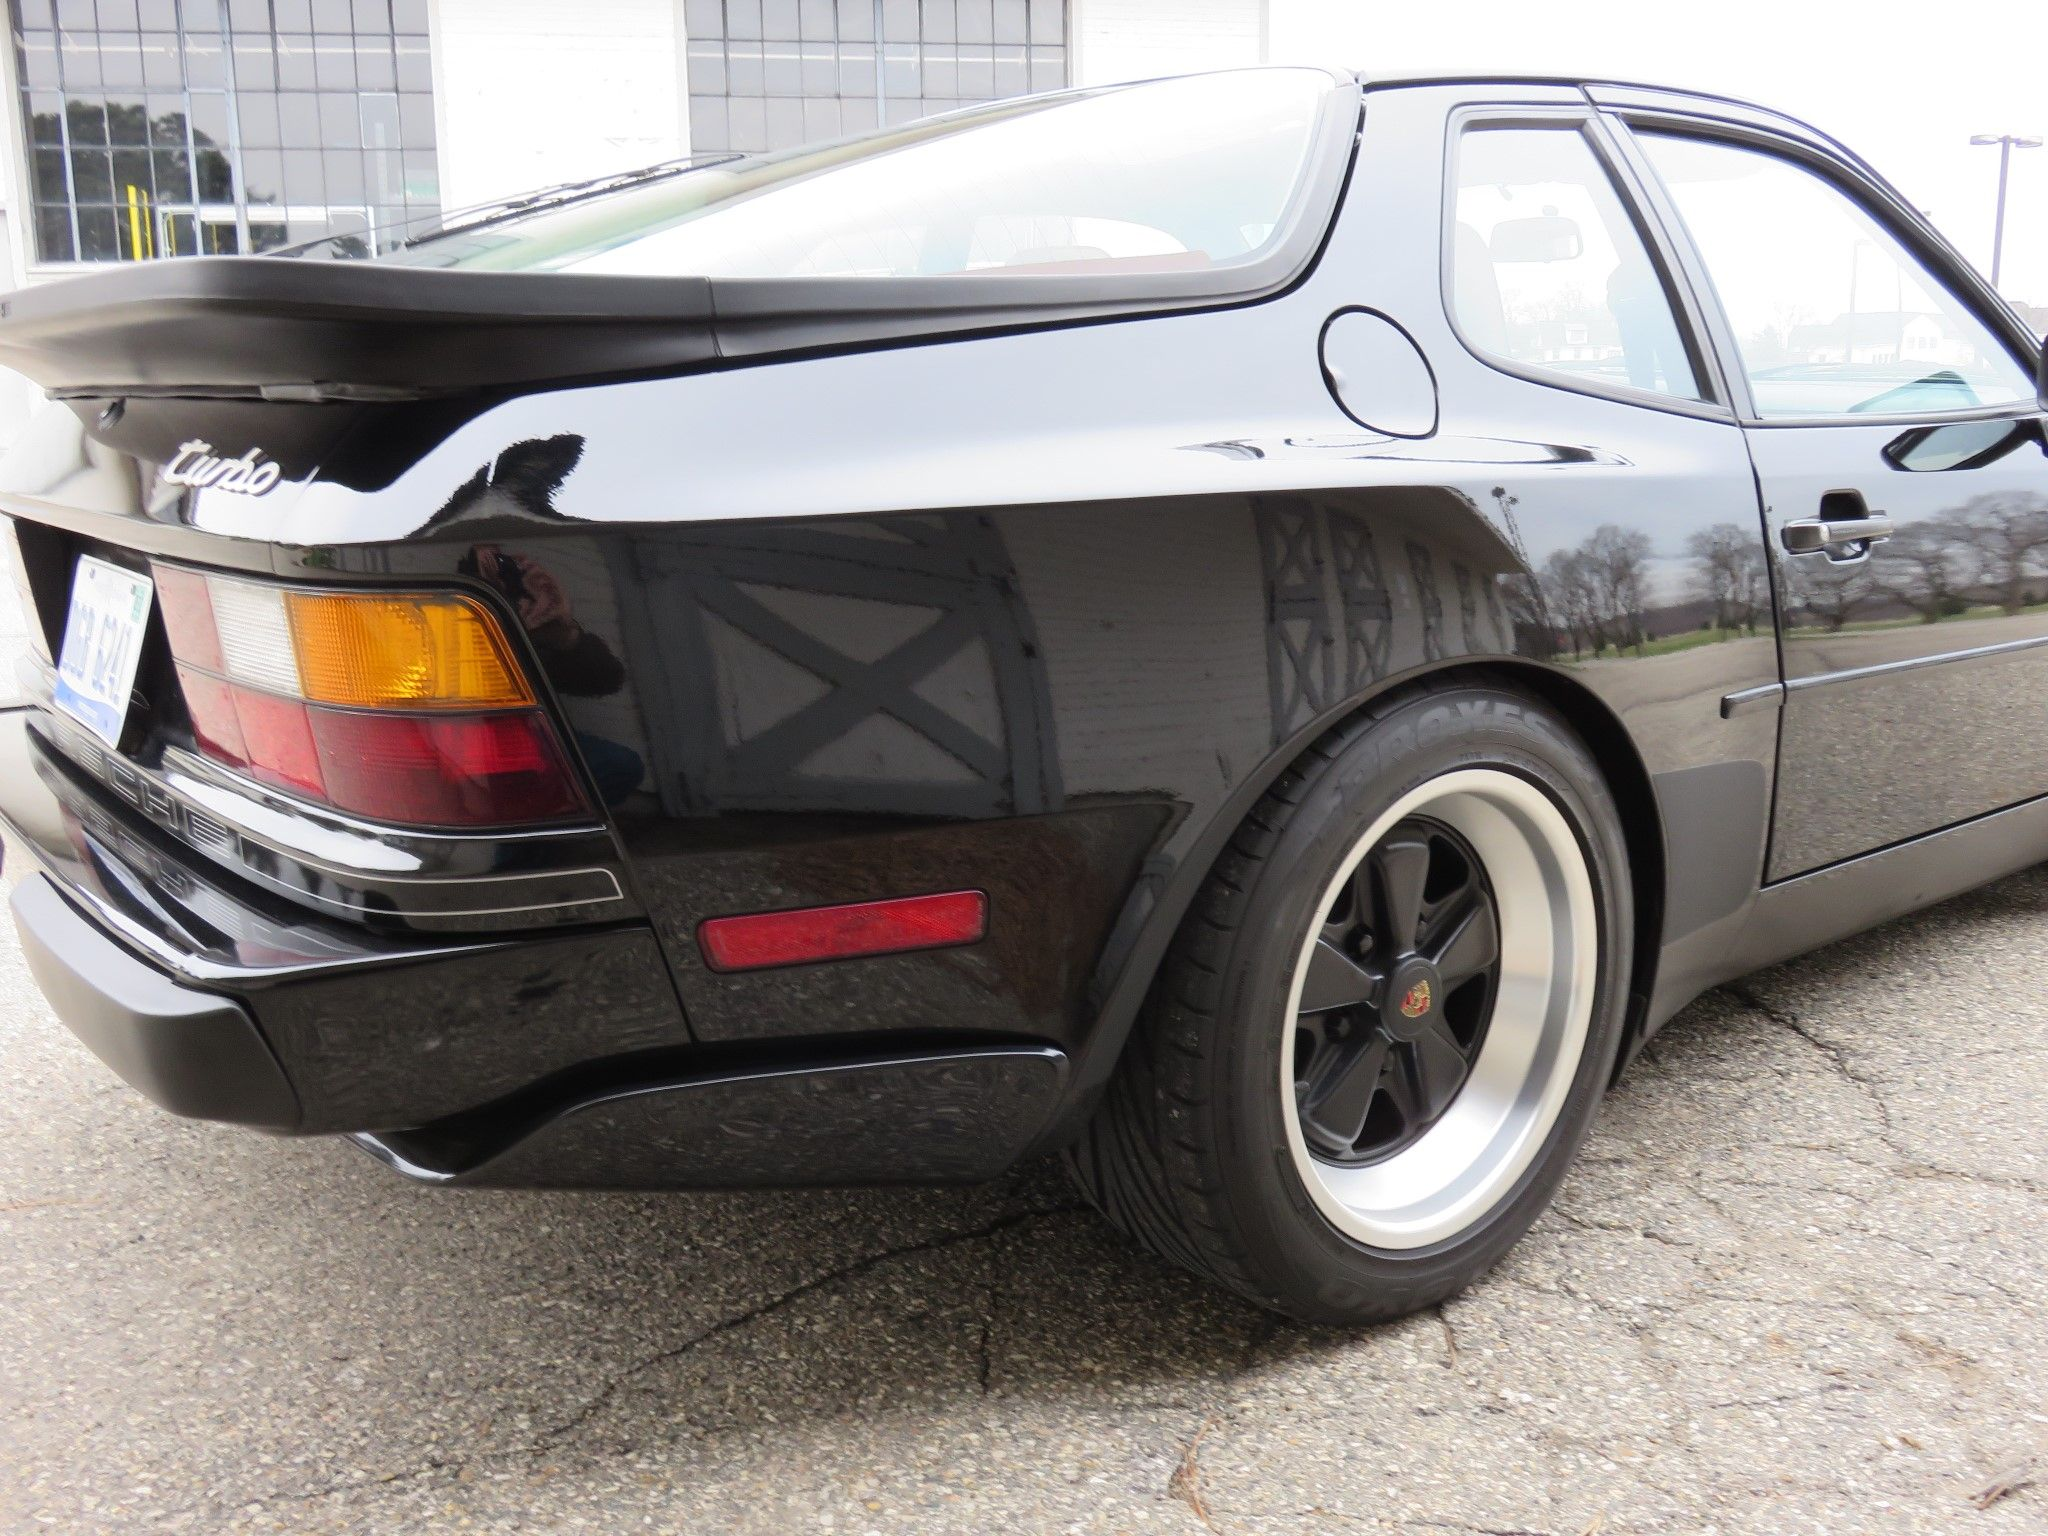 This 60k Mile 1986 Porsche 944 Turbo Is A Mechanically Stock Example Timing Belt With Documented Service History From New The And Water Pump Was